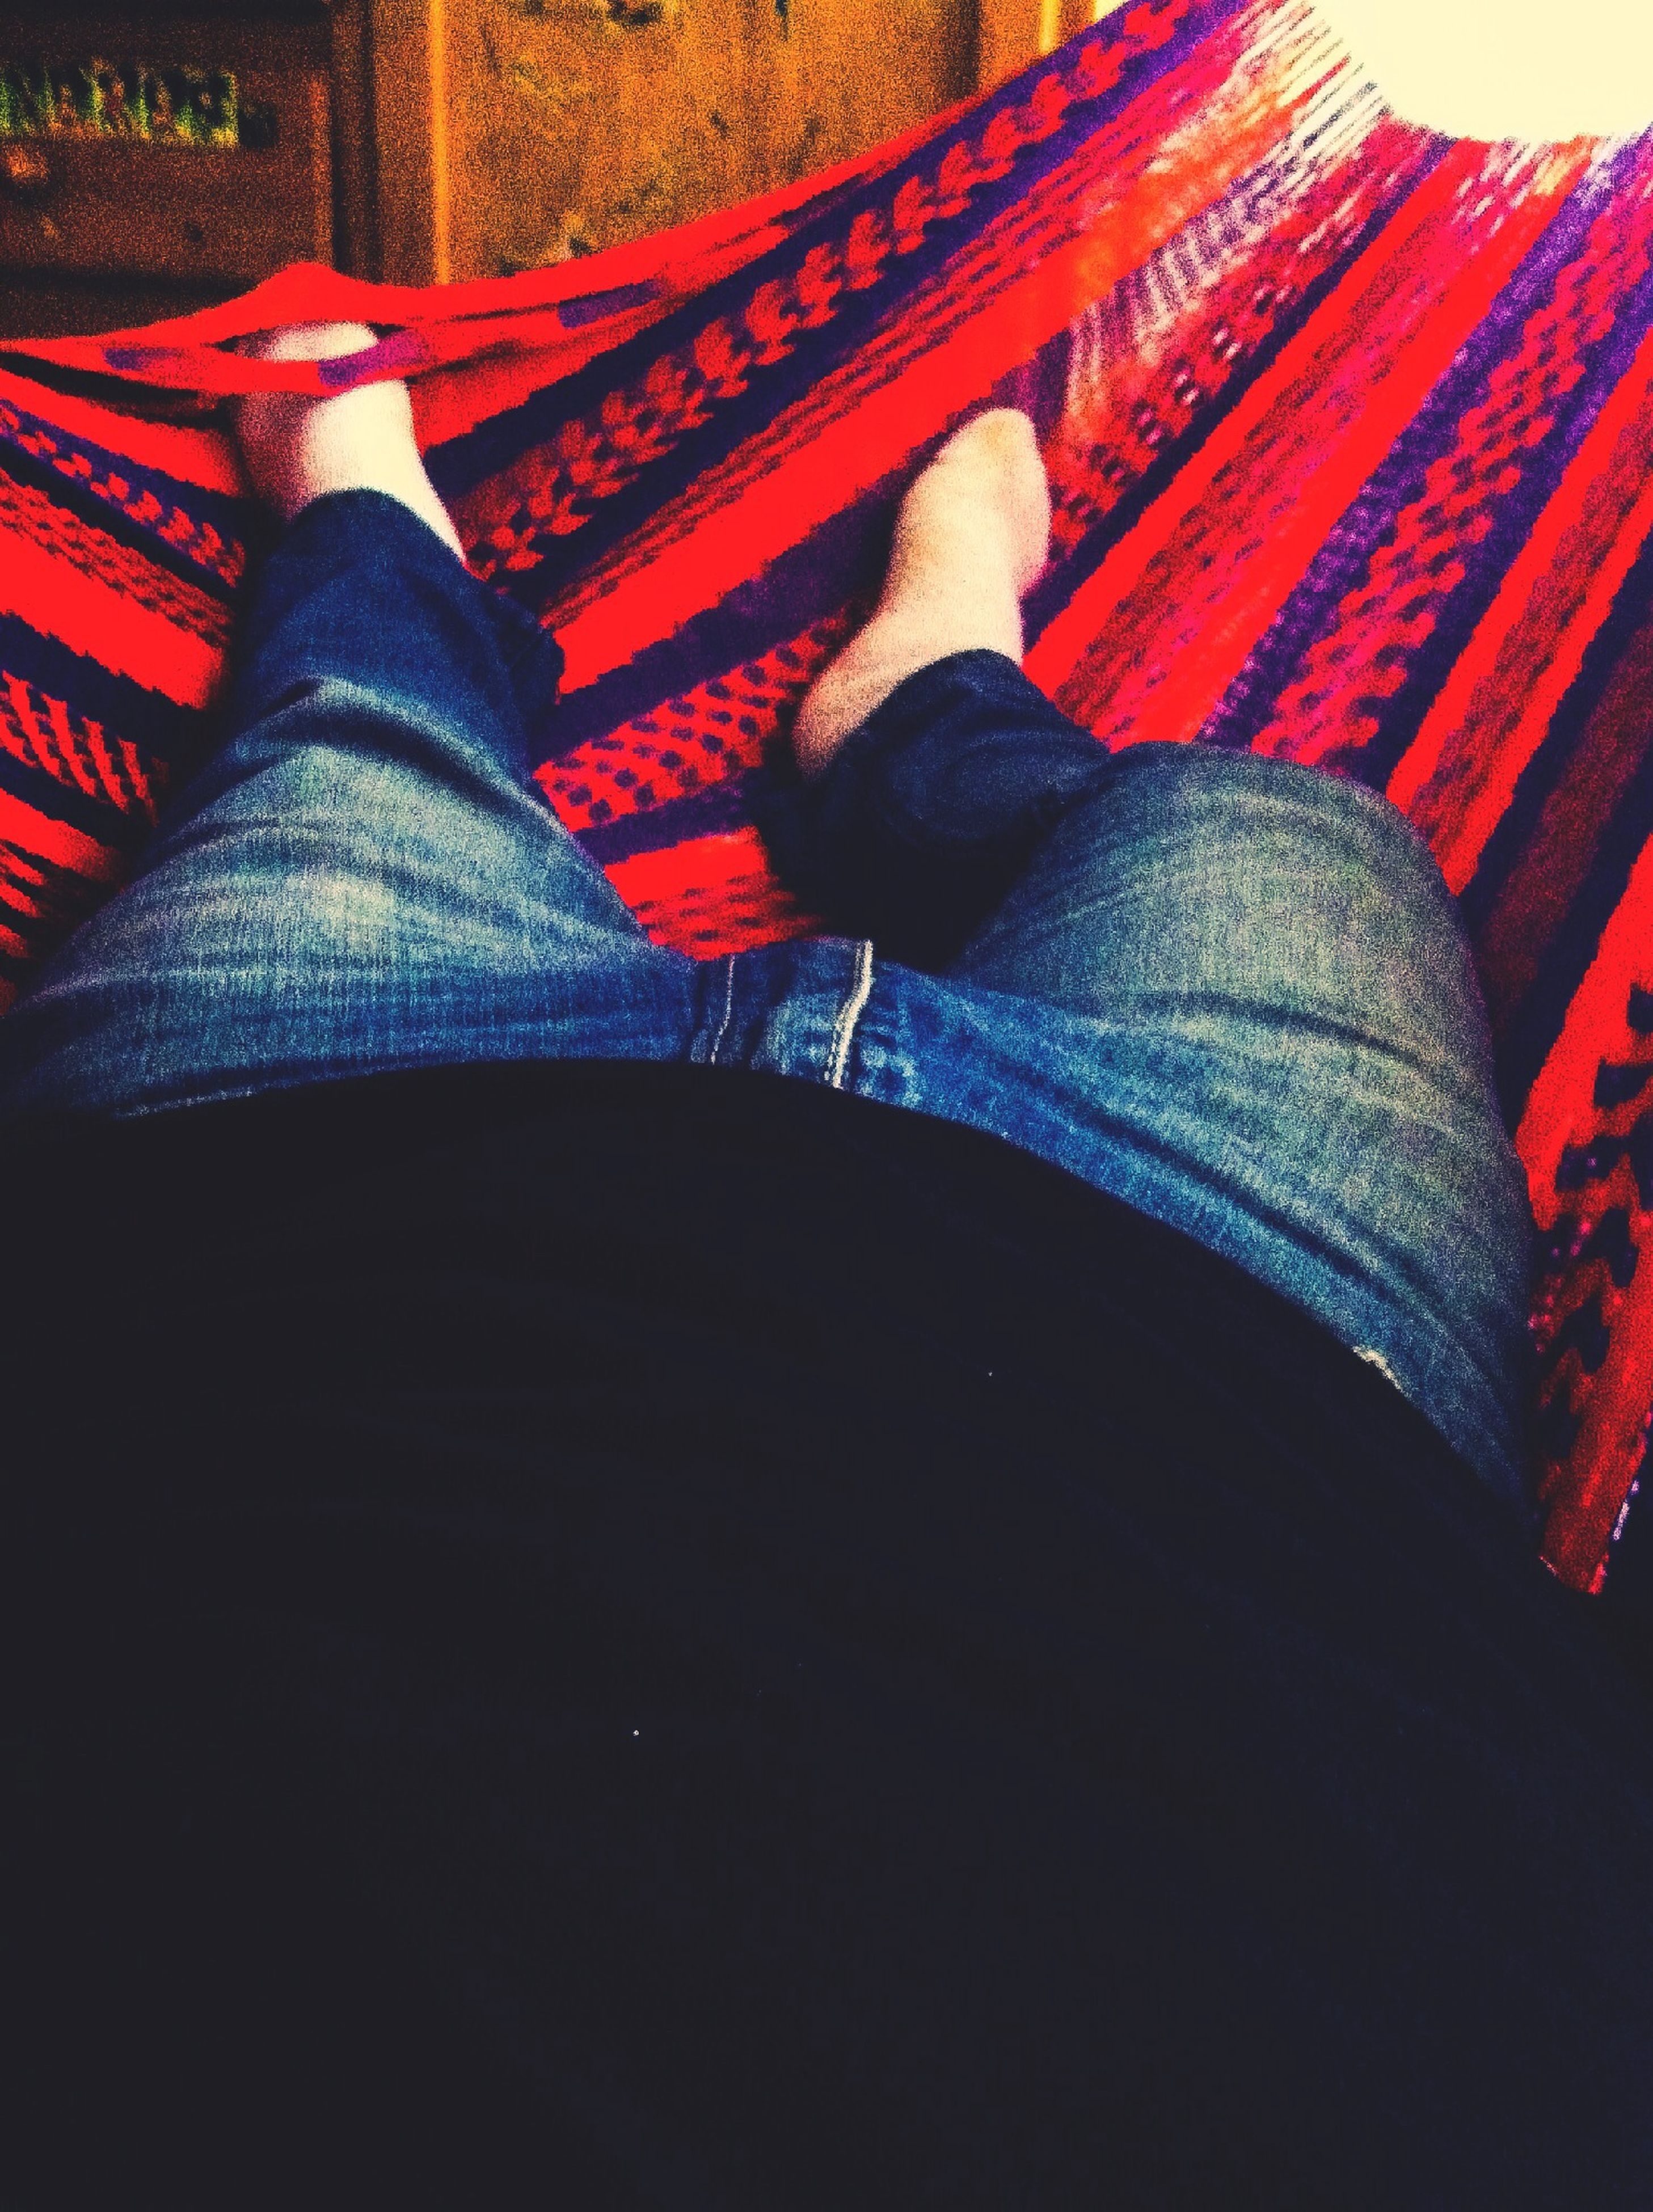 red, indoors, low section, sitting, relaxation, person, lifestyles, high angle view, casual clothing, men, leisure activity, resting, standing, striped, jeans, comfortable, rear view